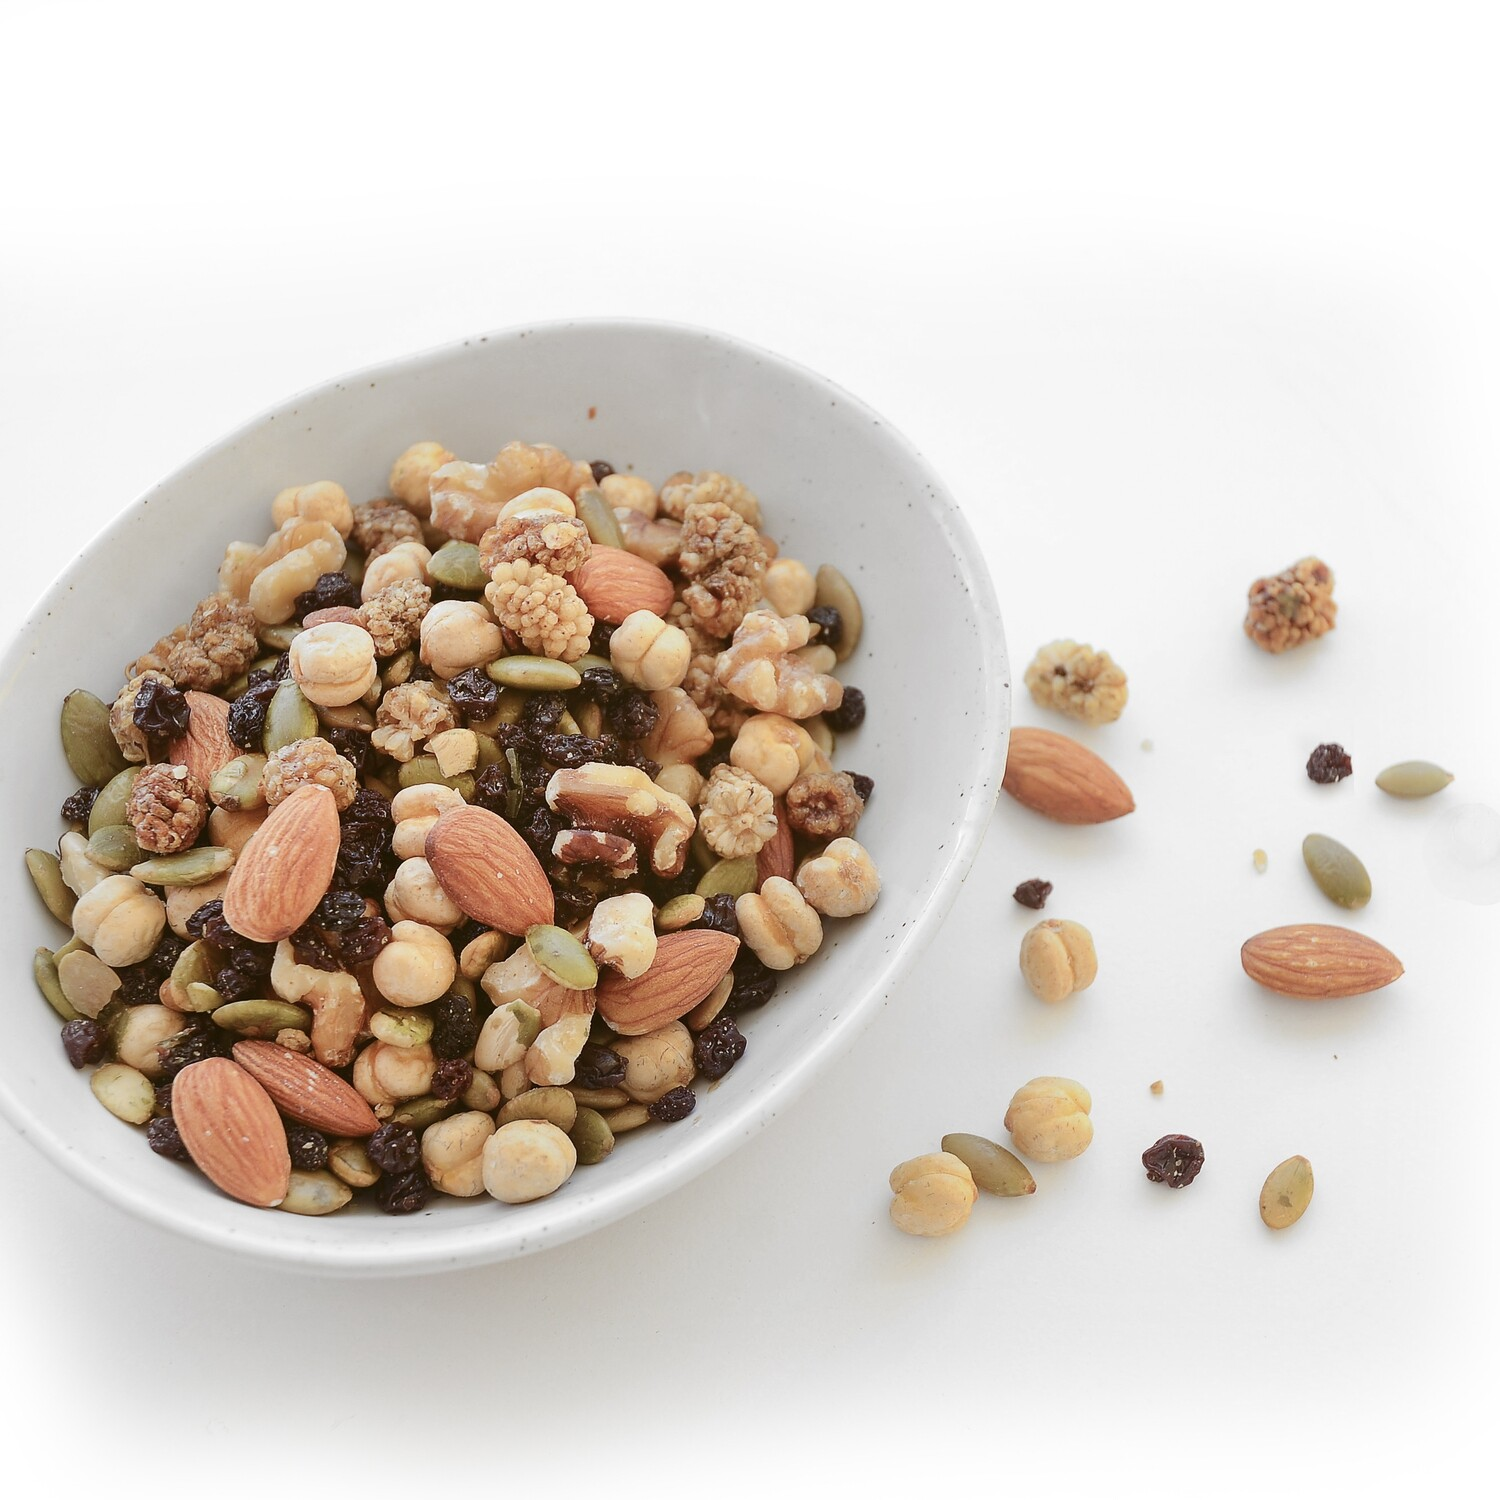 Bliss Nut Mix